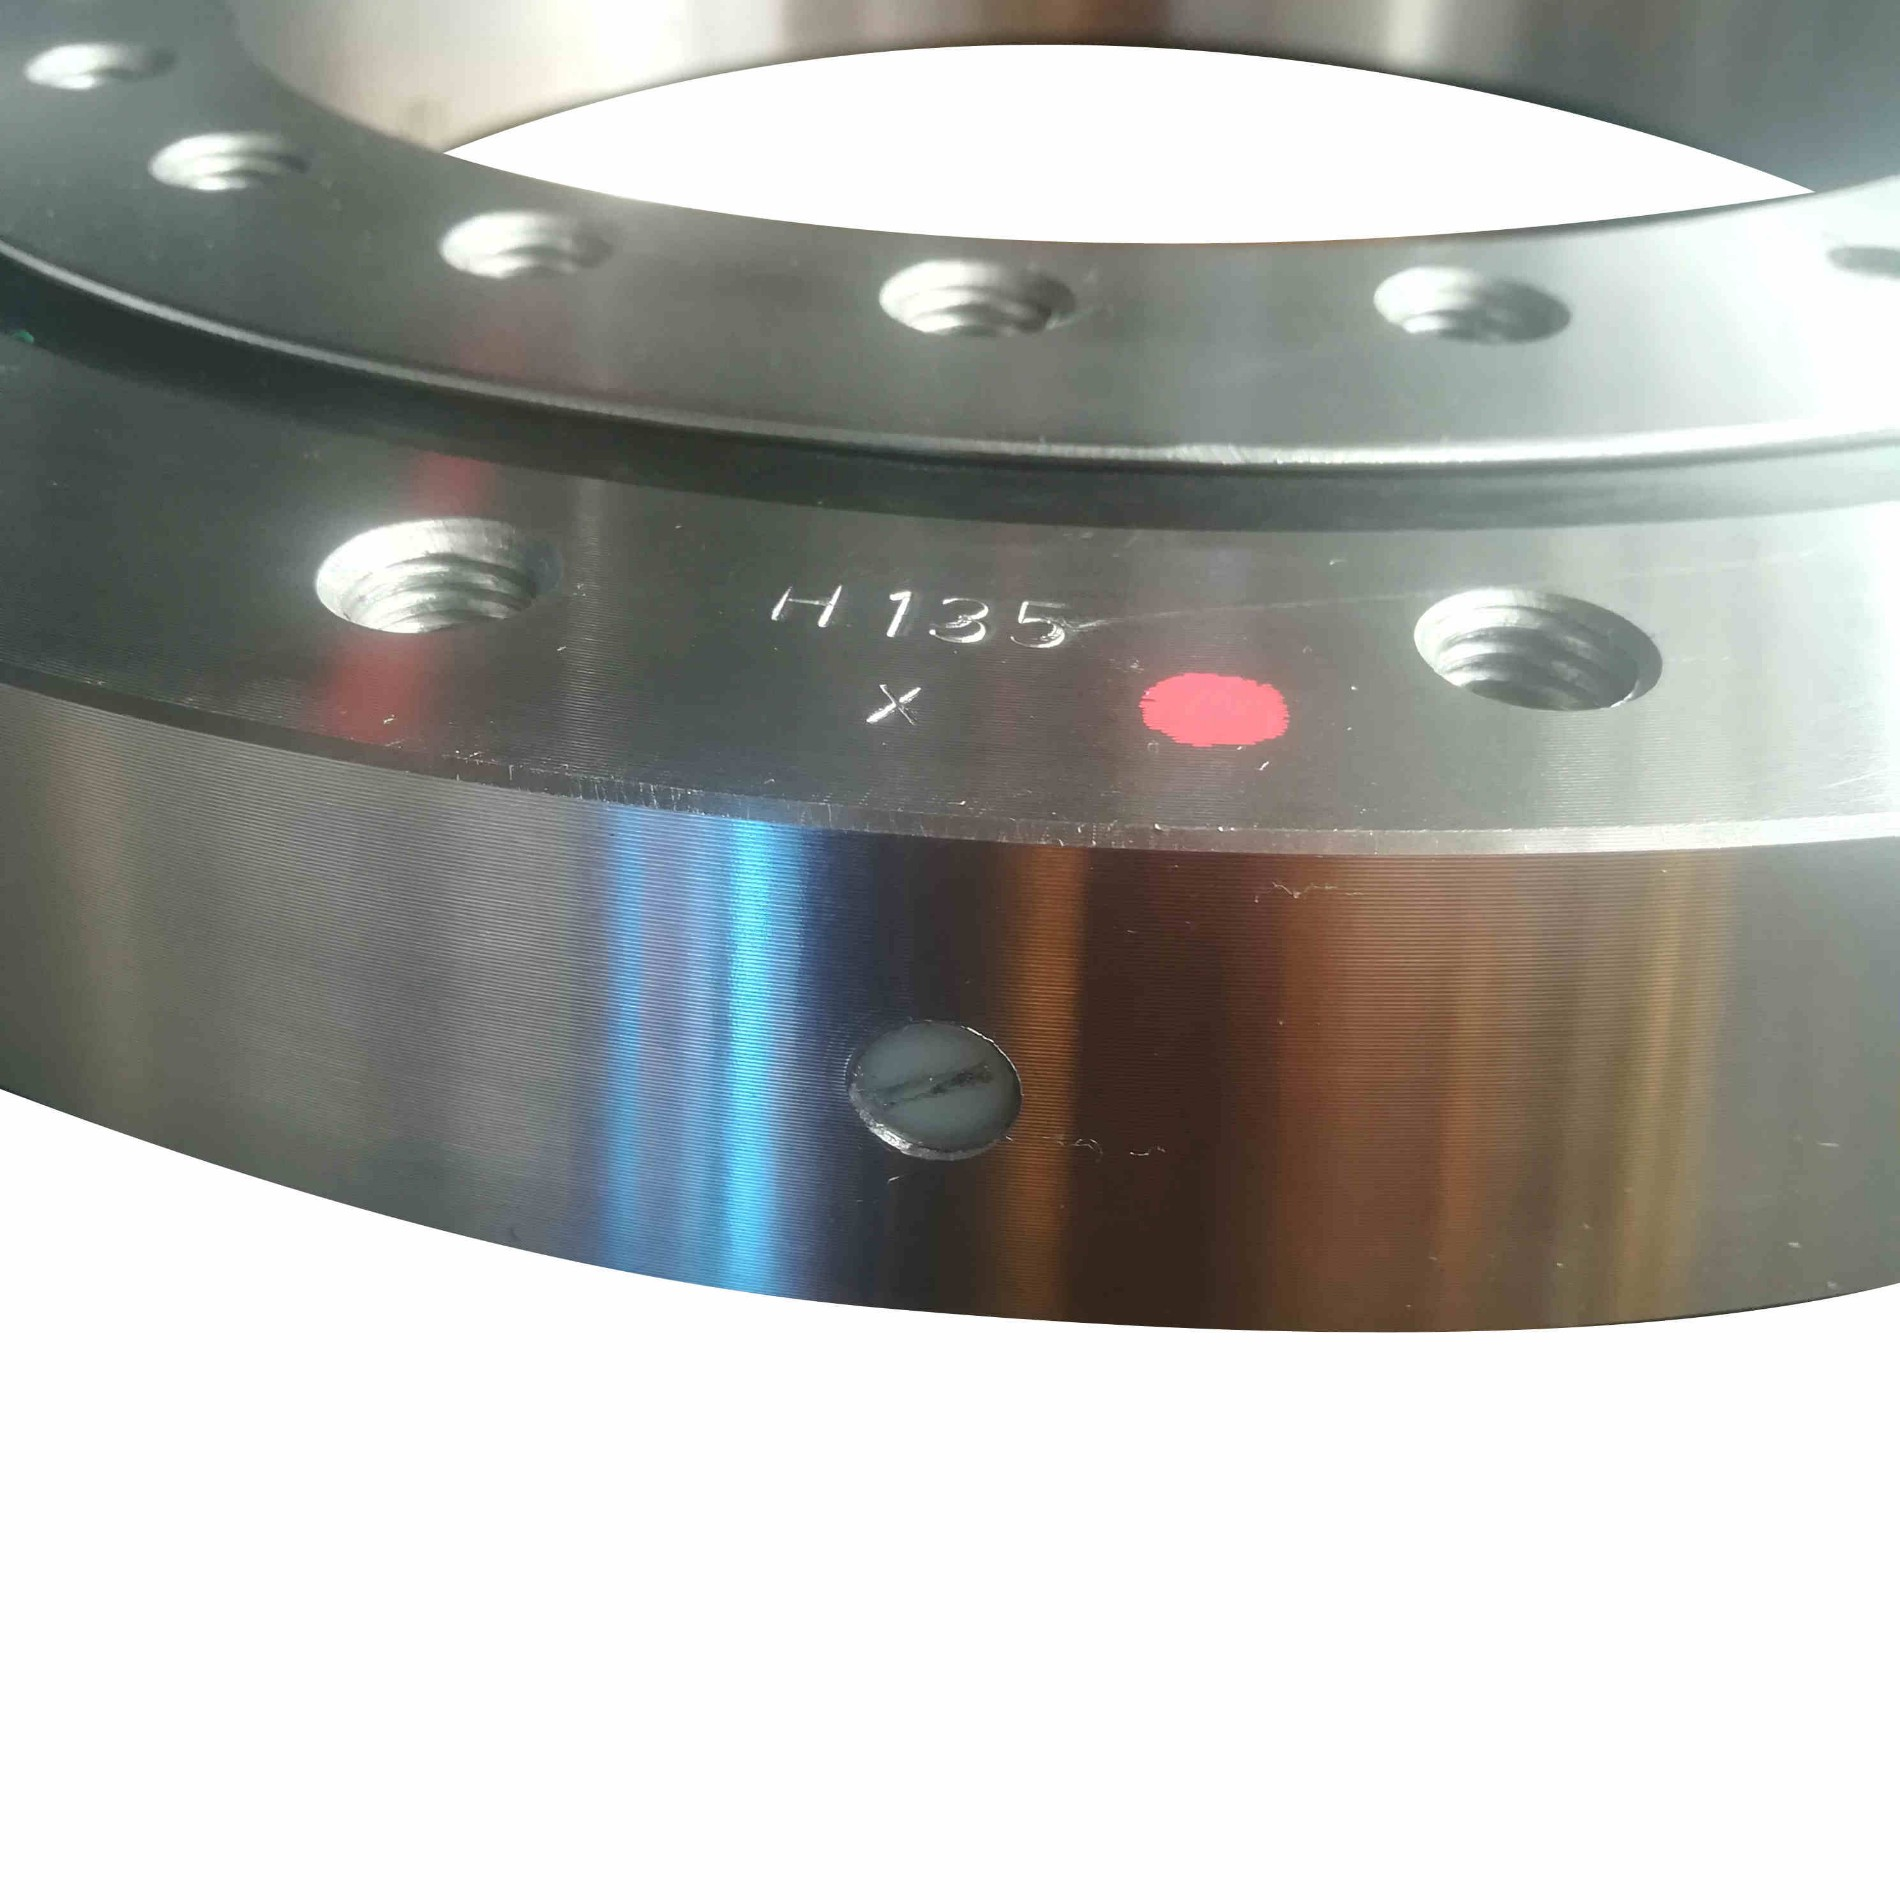 Four Point Contact Ball Slewing Bearing For Rail Machinery Manufacturers, Four Point Contact Ball Slewing Bearing For Rail Machinery Factory, Supply Four Point Contact Ball Slewing Bearing For Rail Machinery